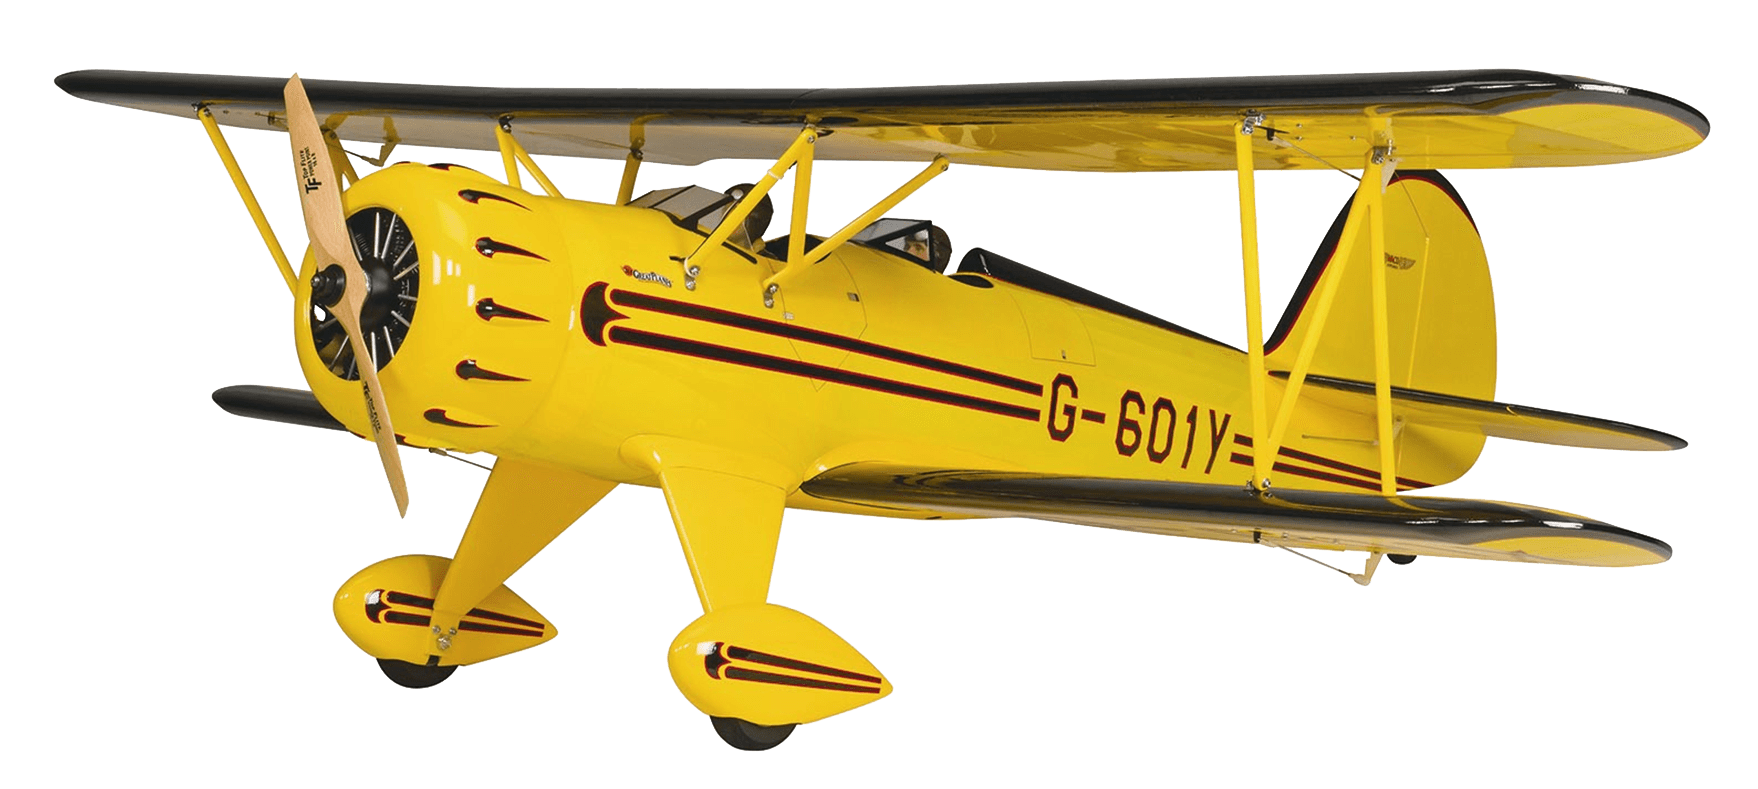 graphic royalty free download Airplane png photos. Biplane clipart yellow.